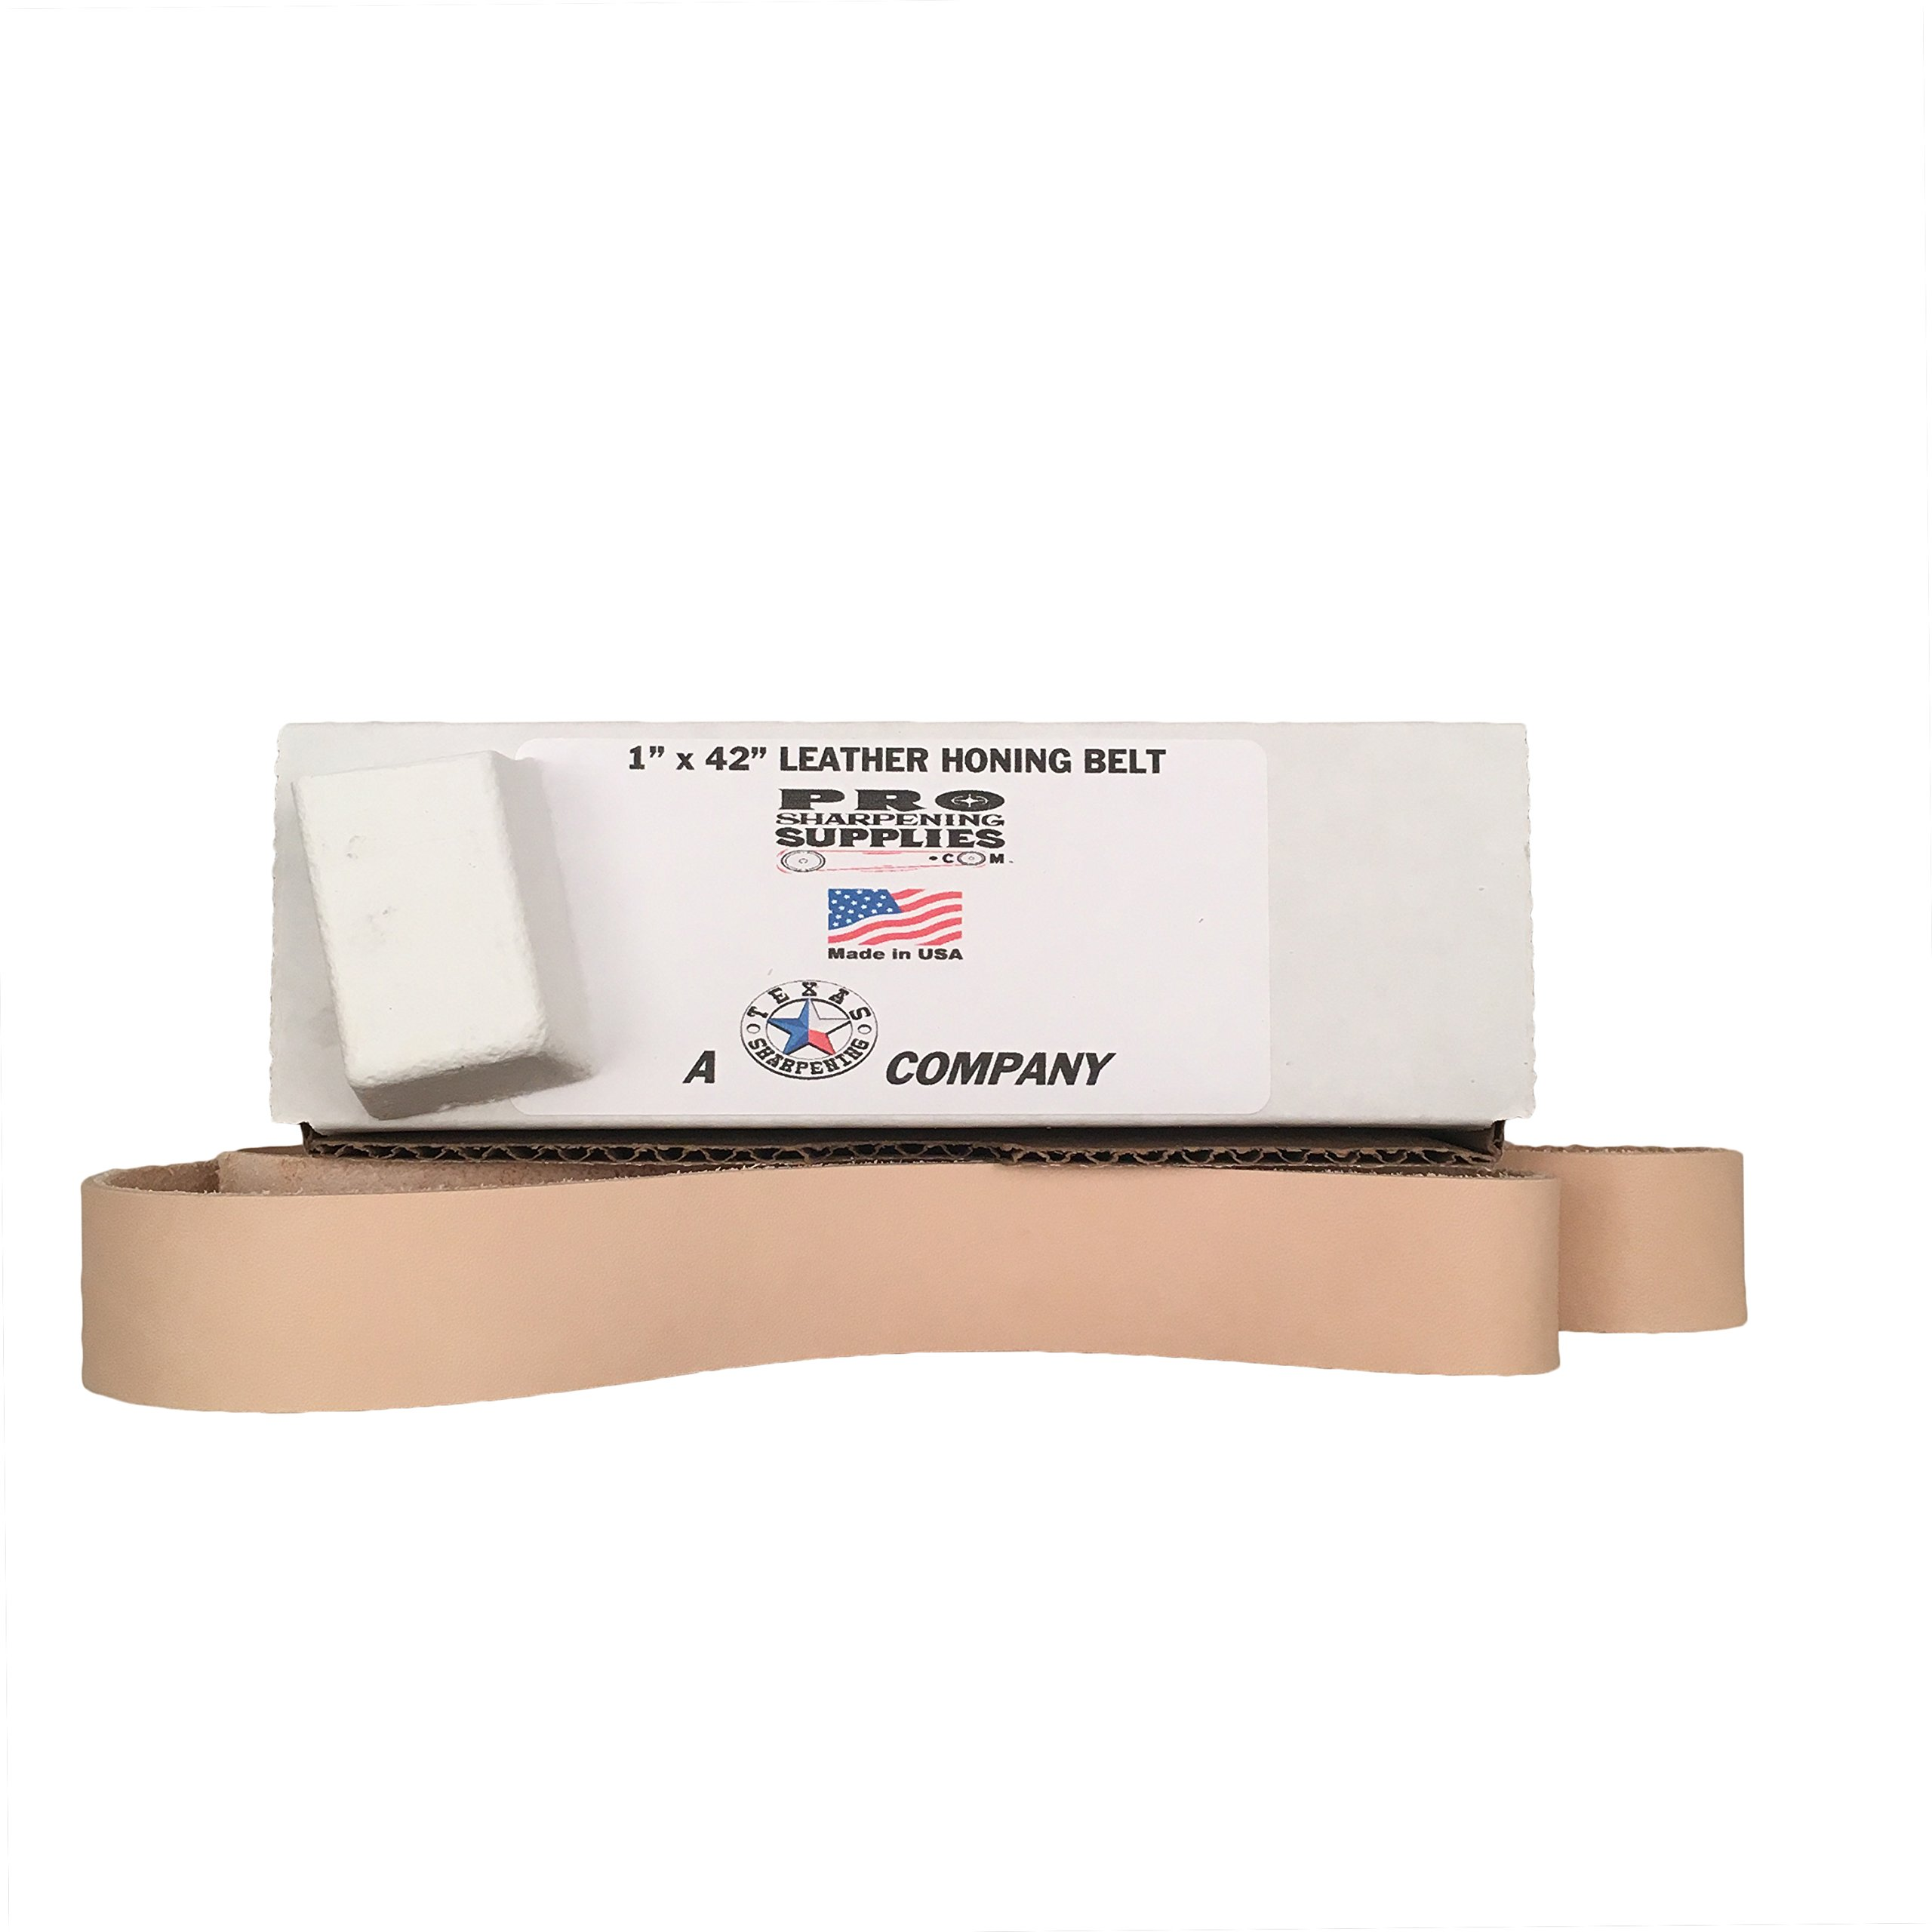 1x42 Leather Strop Belt - Buffing Compound Included - Pro Sharpening Supplies